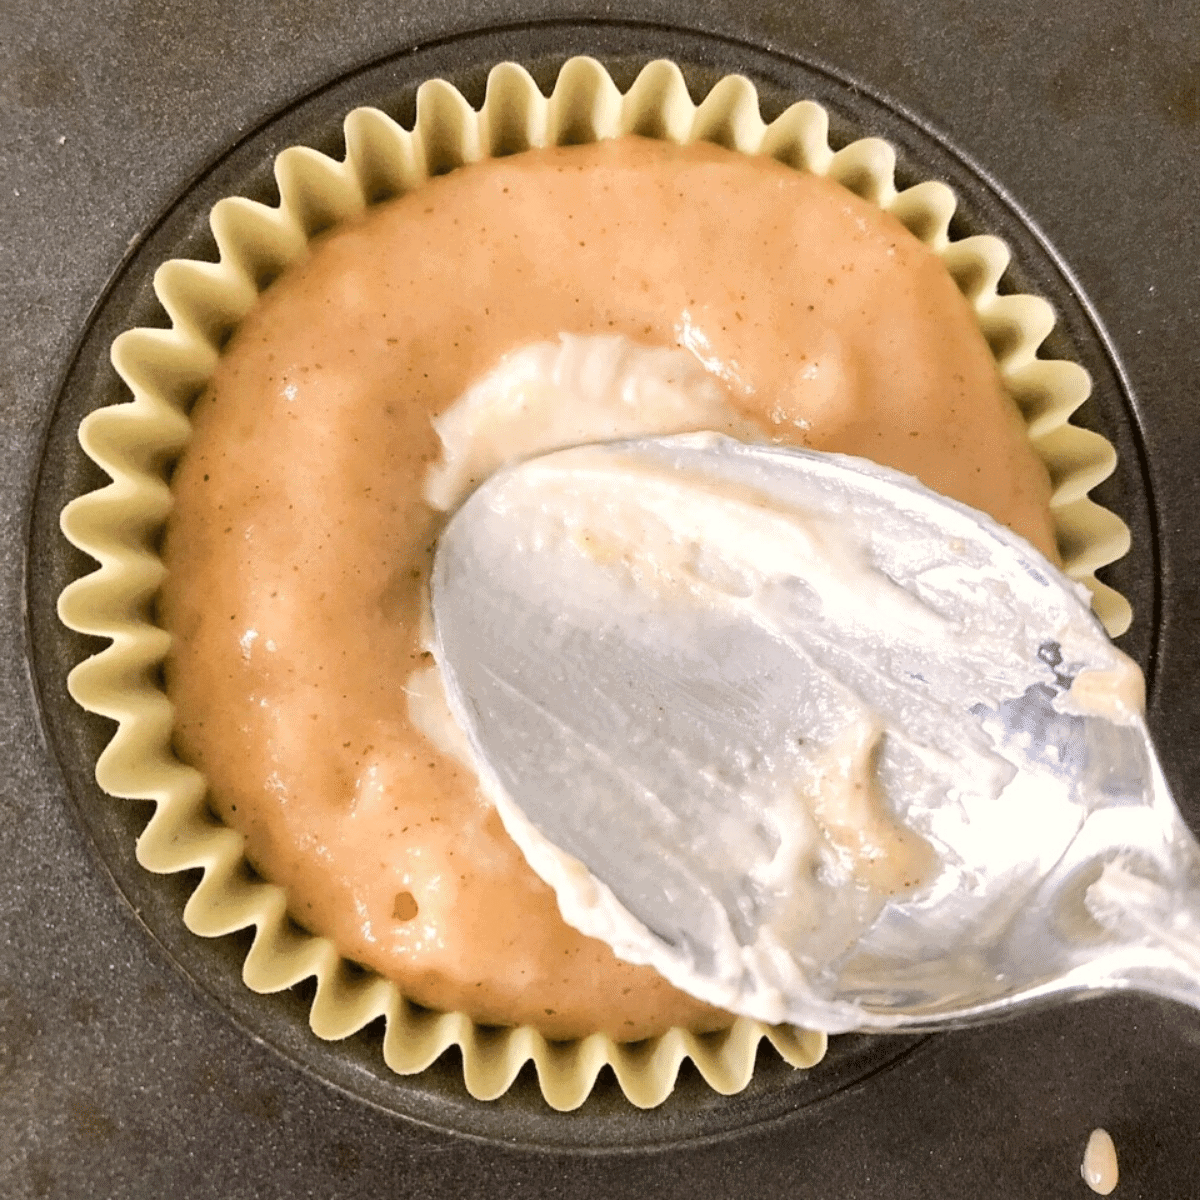 Add cream cheese filling to muffin batter in divot and push down with the back of a spoon